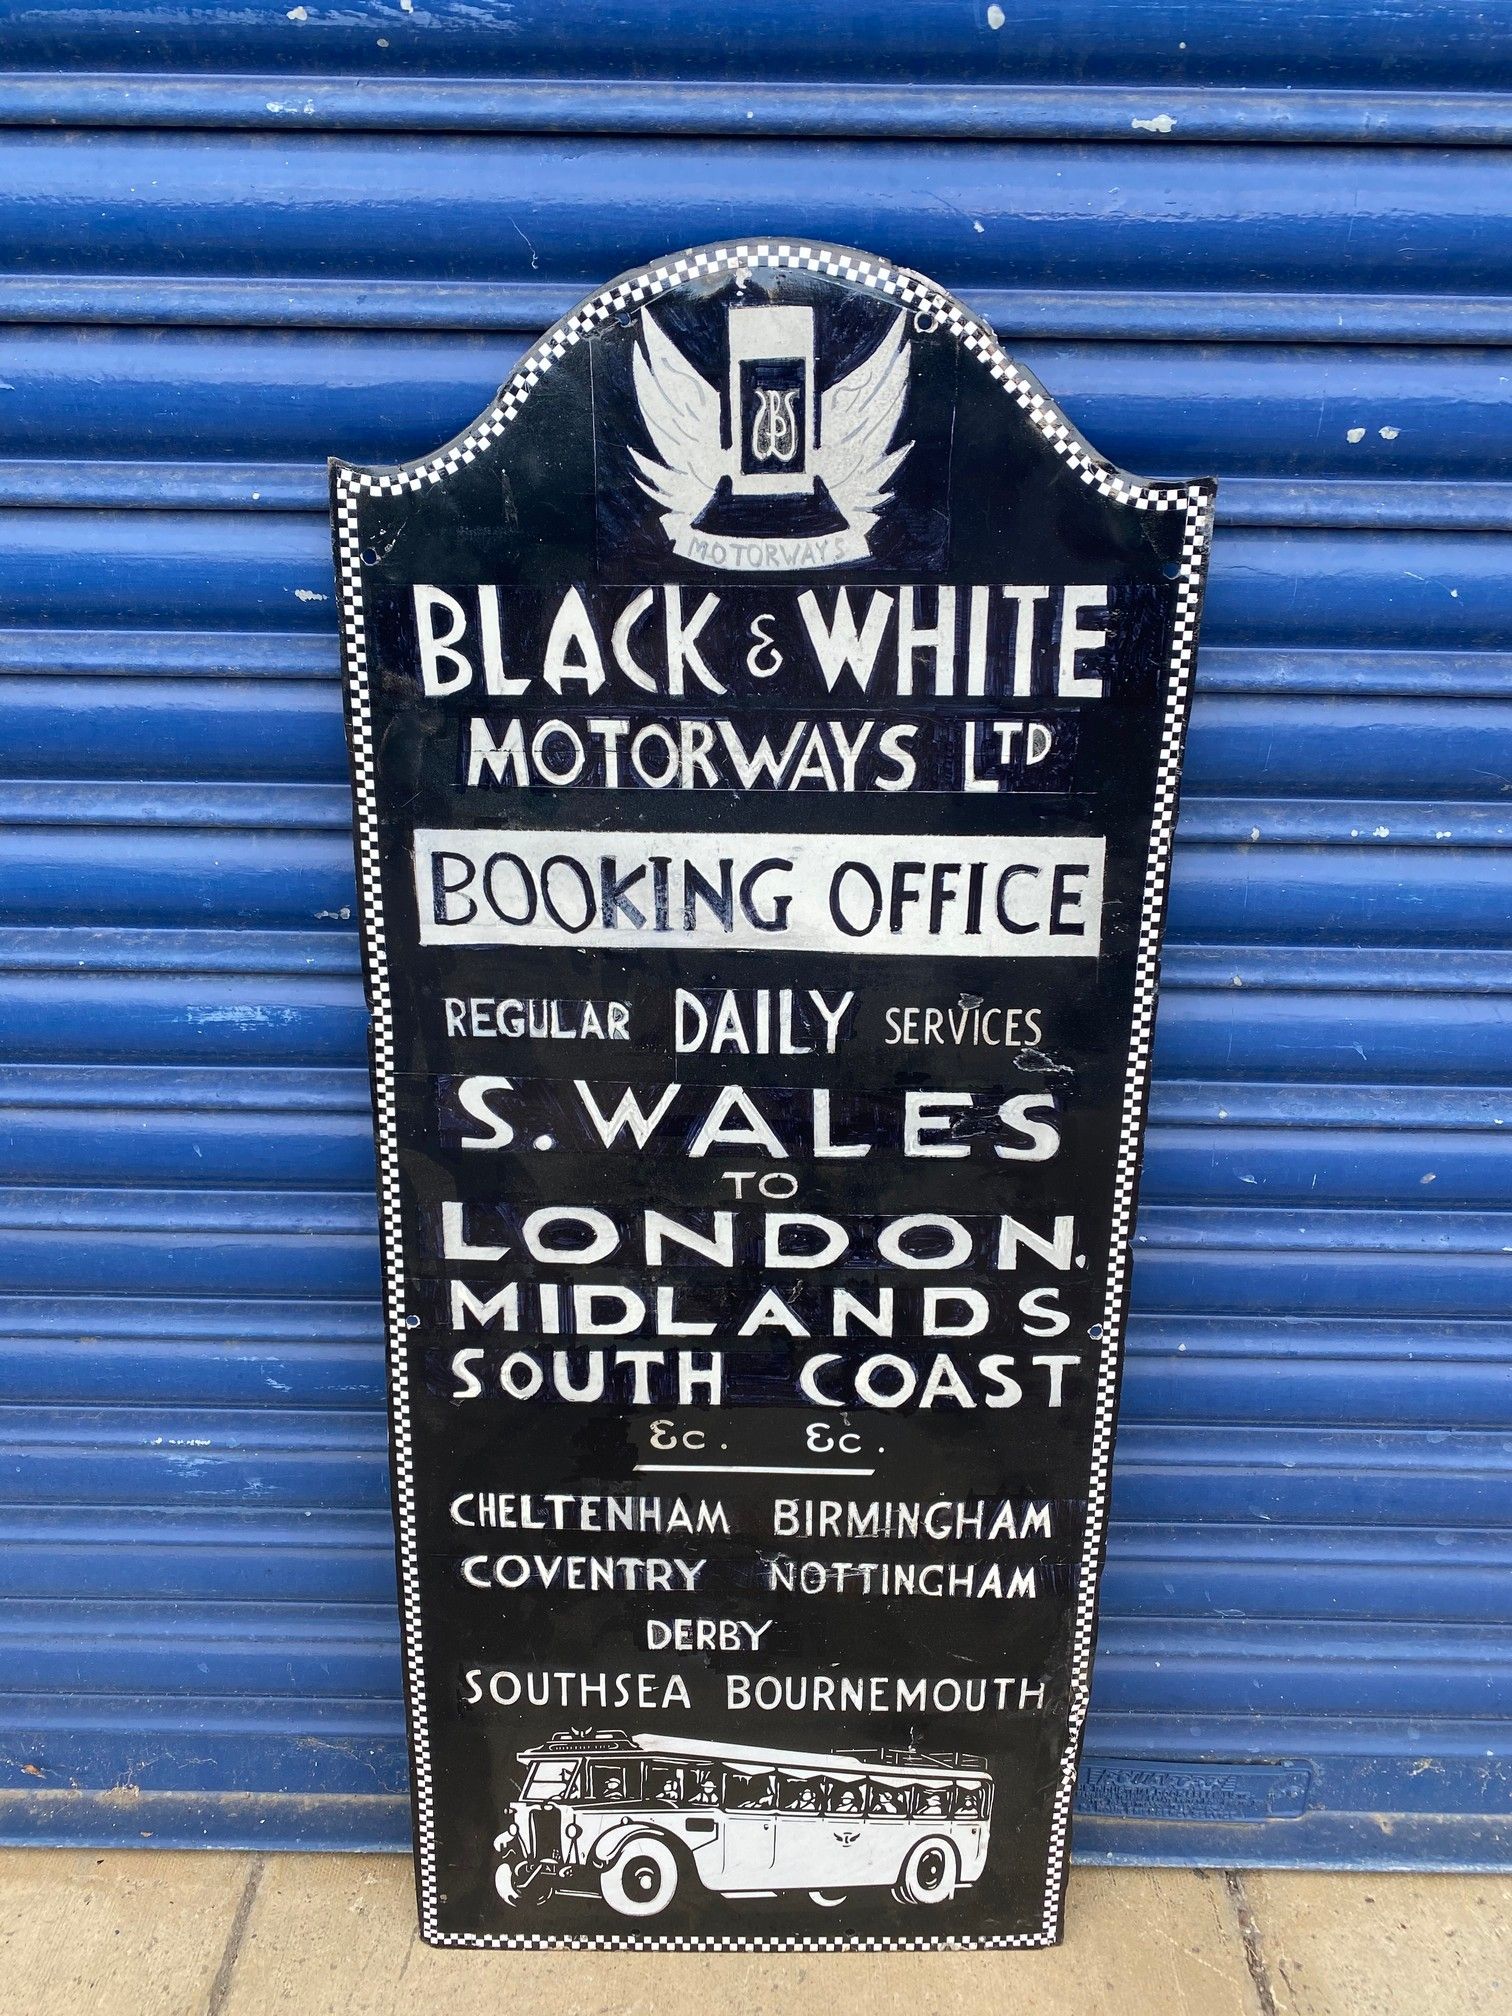 A Black and White Motorways Ltd Booking Office part pictorial enamel sign, heavily restored.